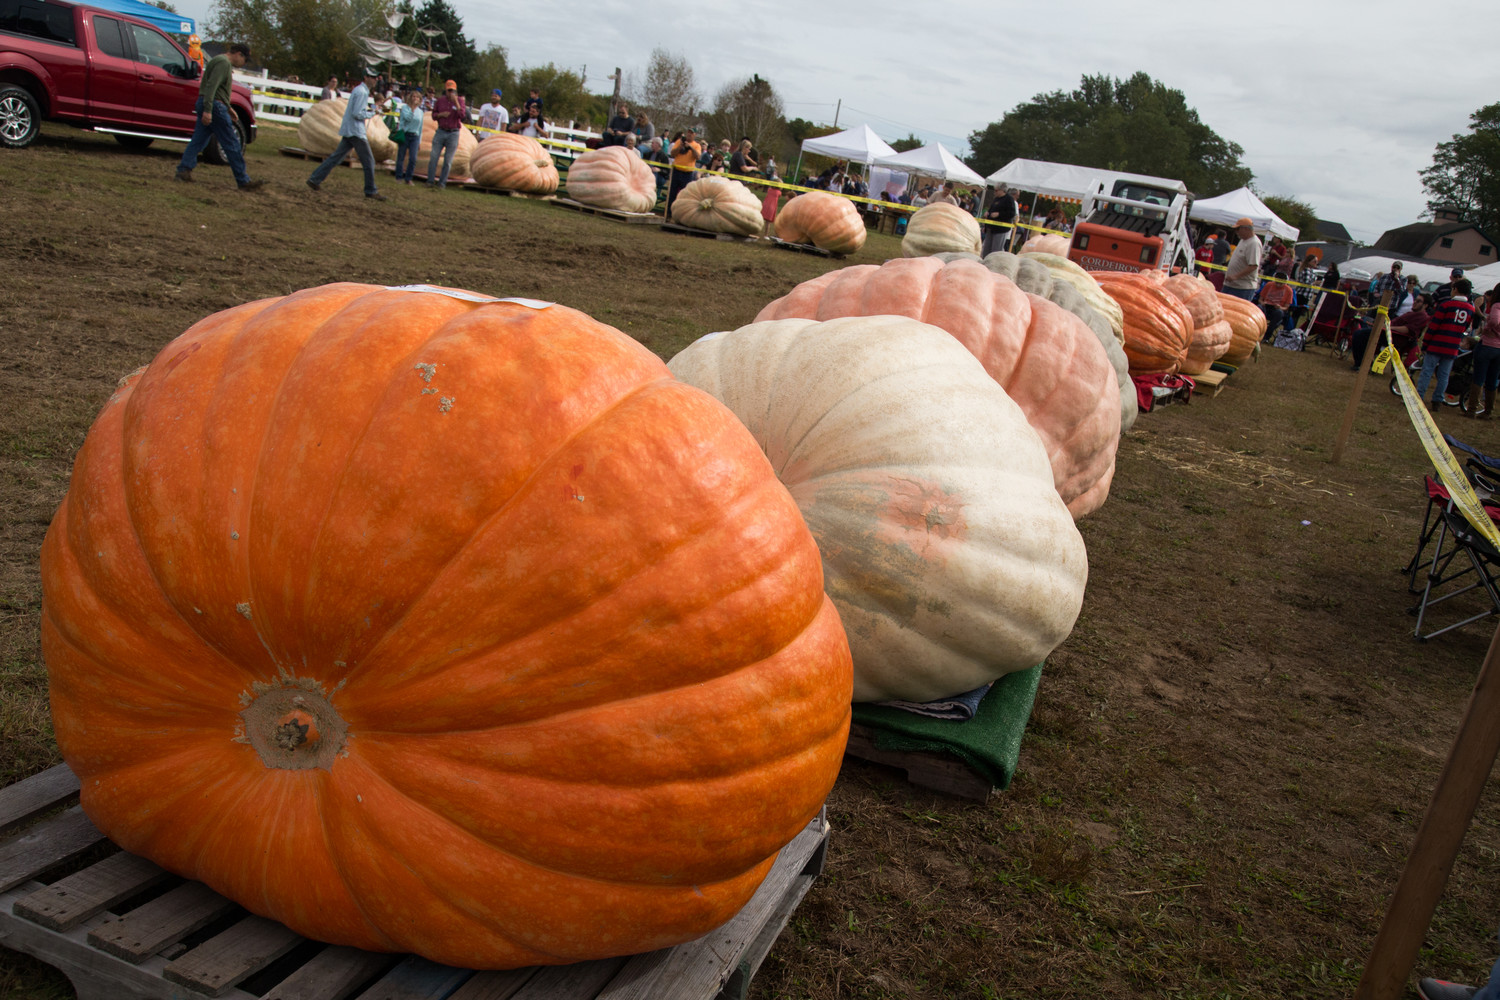 The famously giant pumpkins return to Frerichs Farm's for the annual Pumpkin Weigh-Off, October 6